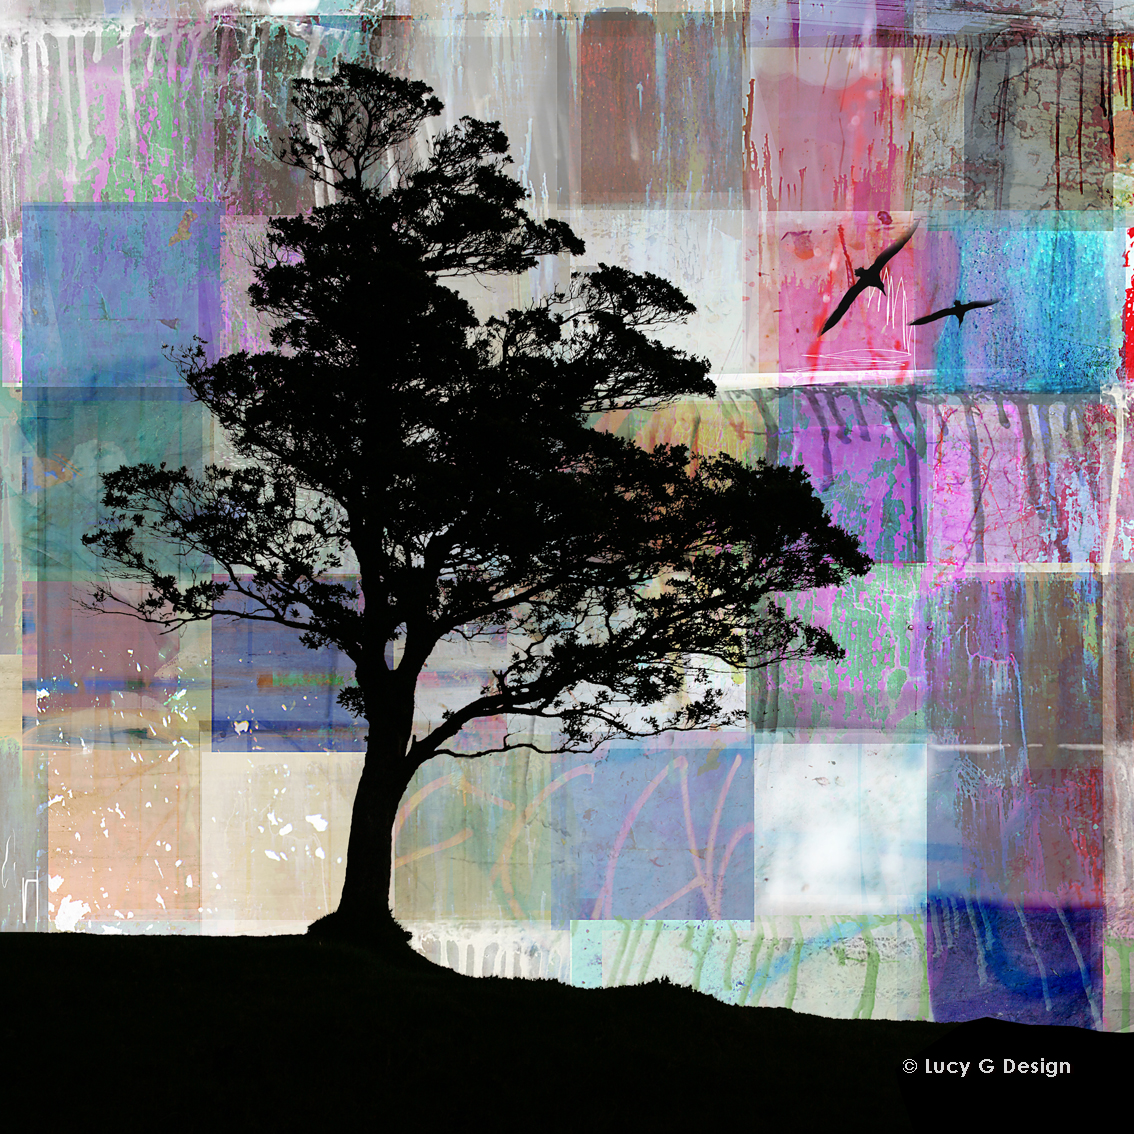 'Tree silhouette' 51x51cm glass wall art